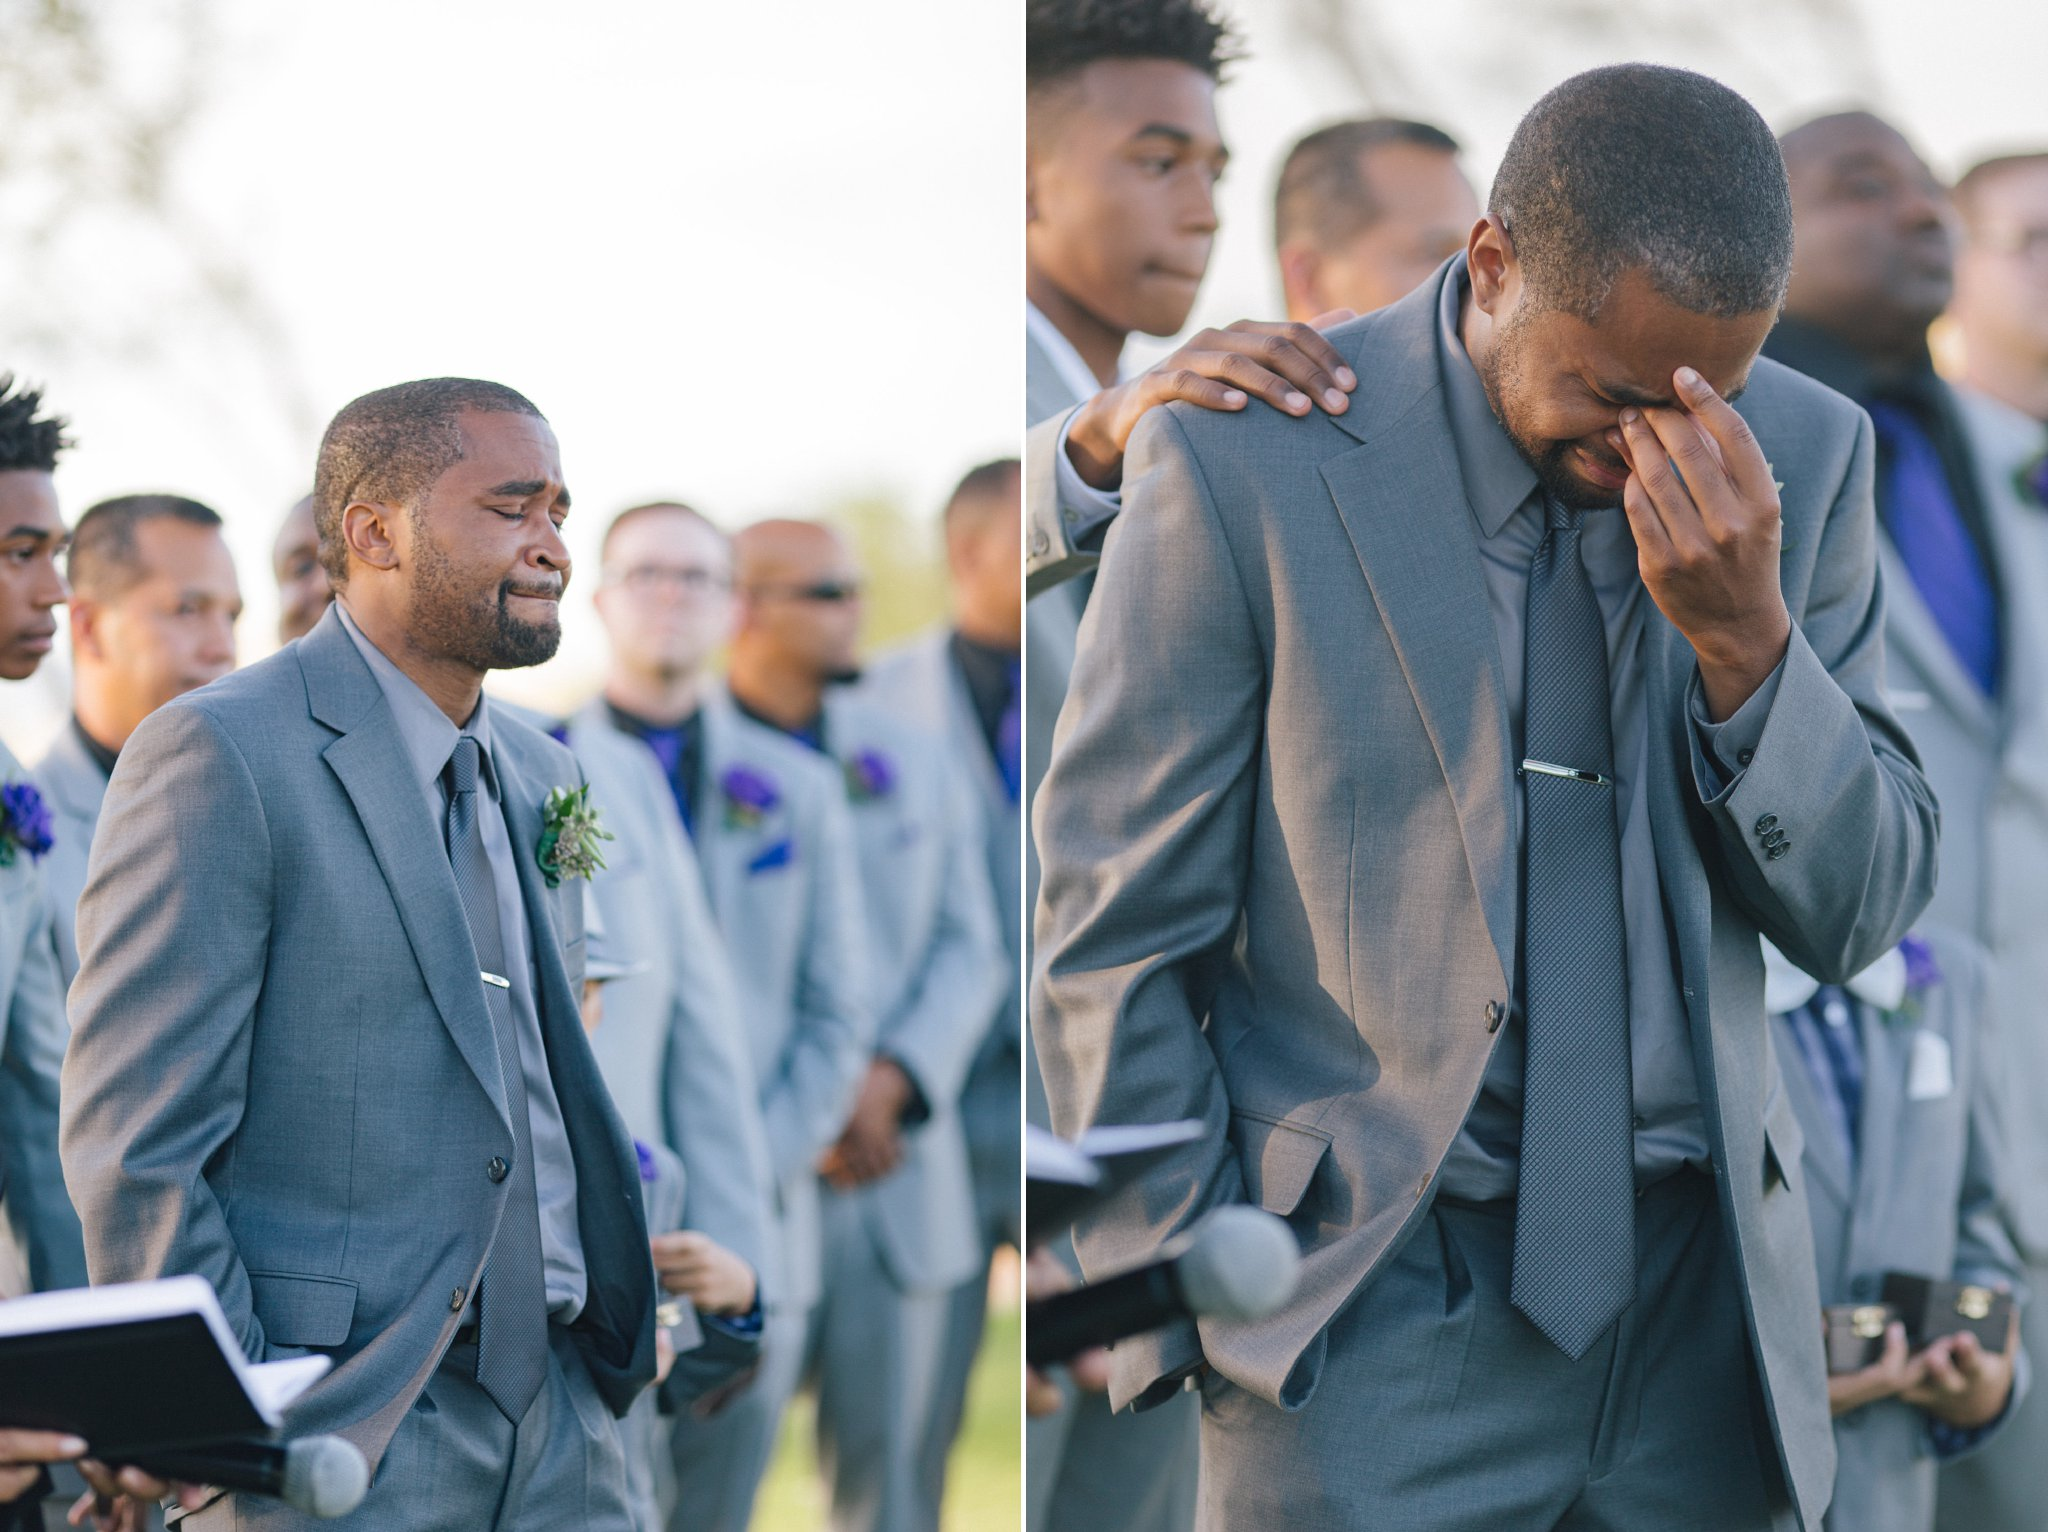 Las Sendas wedding groom crying seeing bride walk down aisle